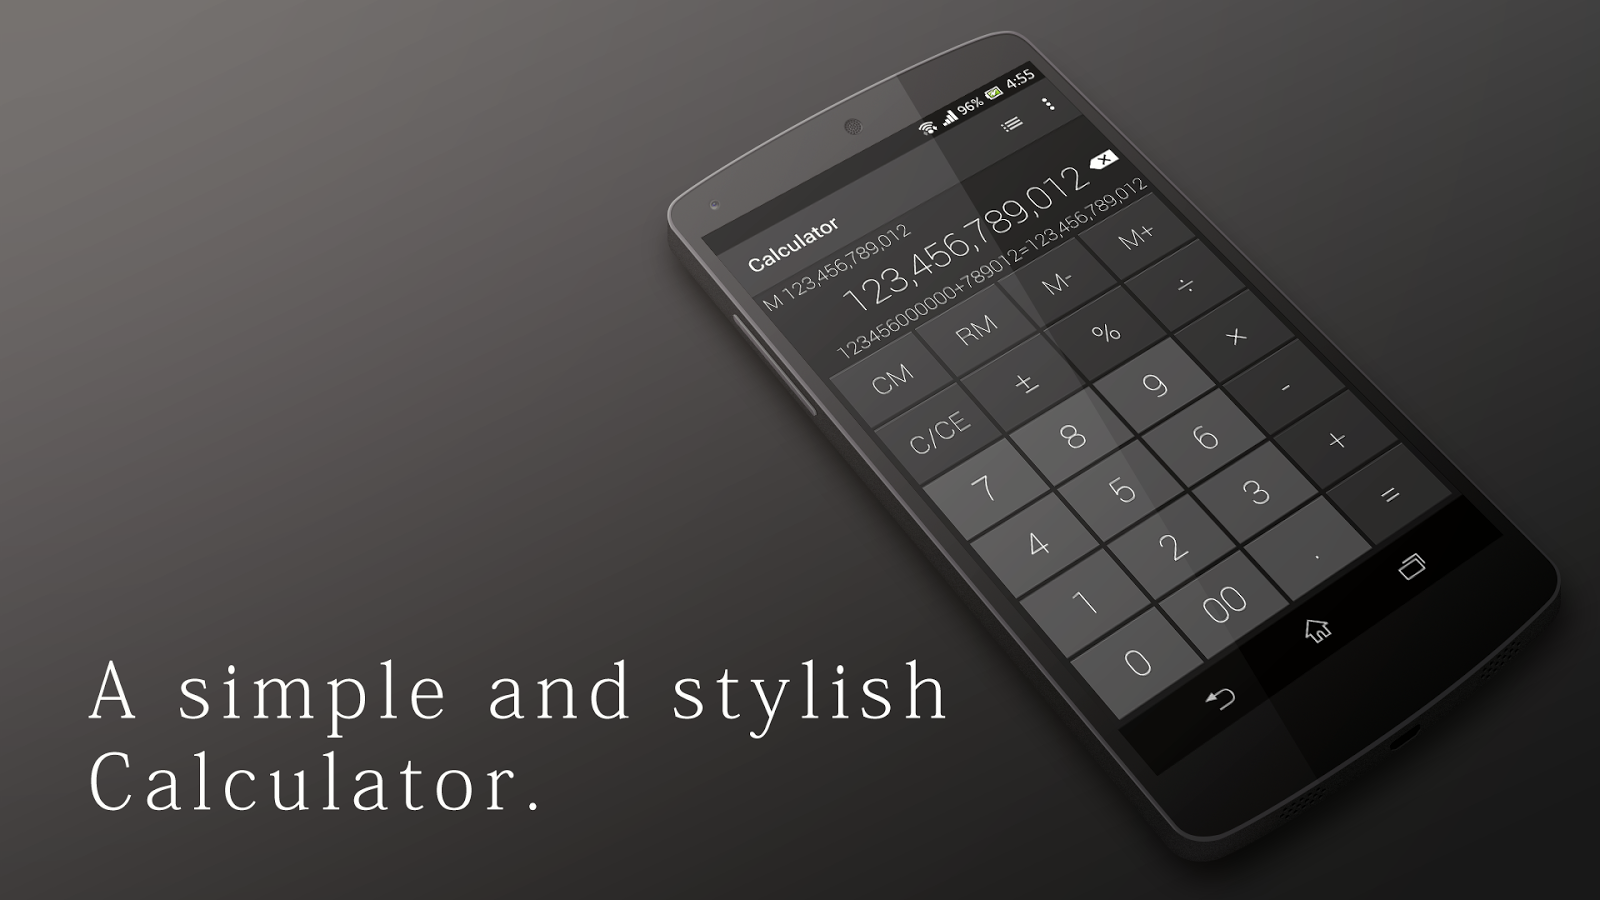 Calculator - Simple & Stylish Screenshot 0